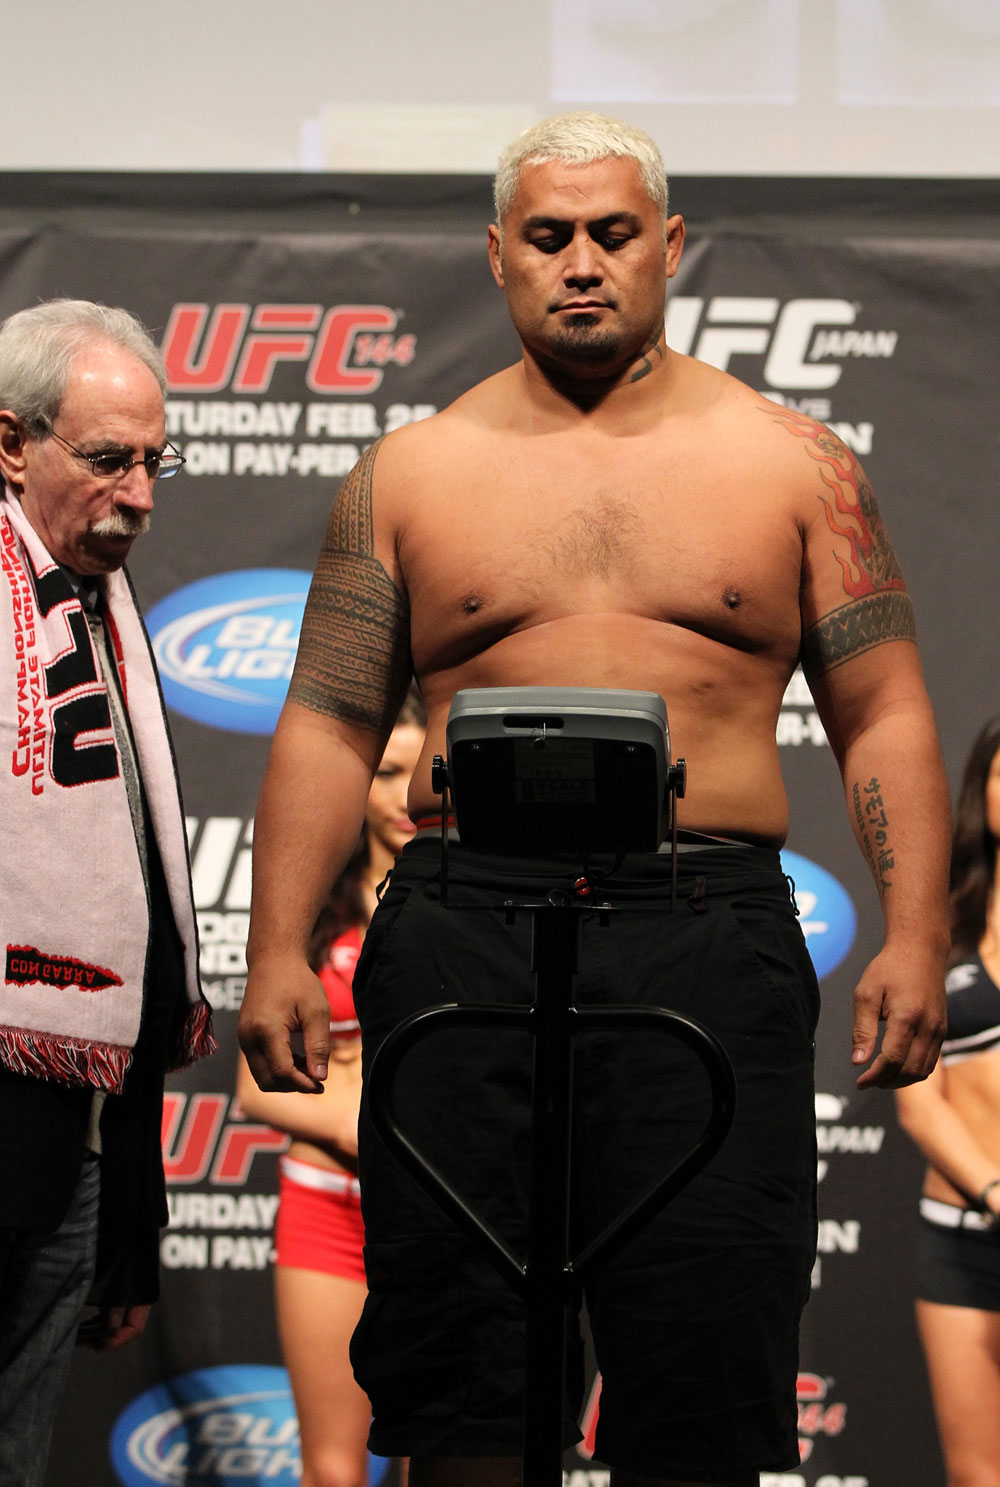 SAITAMA, JAPAN - FEBRUARY 25:  Mark Hunt weighs in during the official UFC 144 weigh in at the Saitama Super Arena on February 25, 2012 in Saitama, Japan.  (Photo by Josh Hedges/Zuffa LLC/Zuffa LLC via Getty Images) *** Local Caption *** Mark Hunt